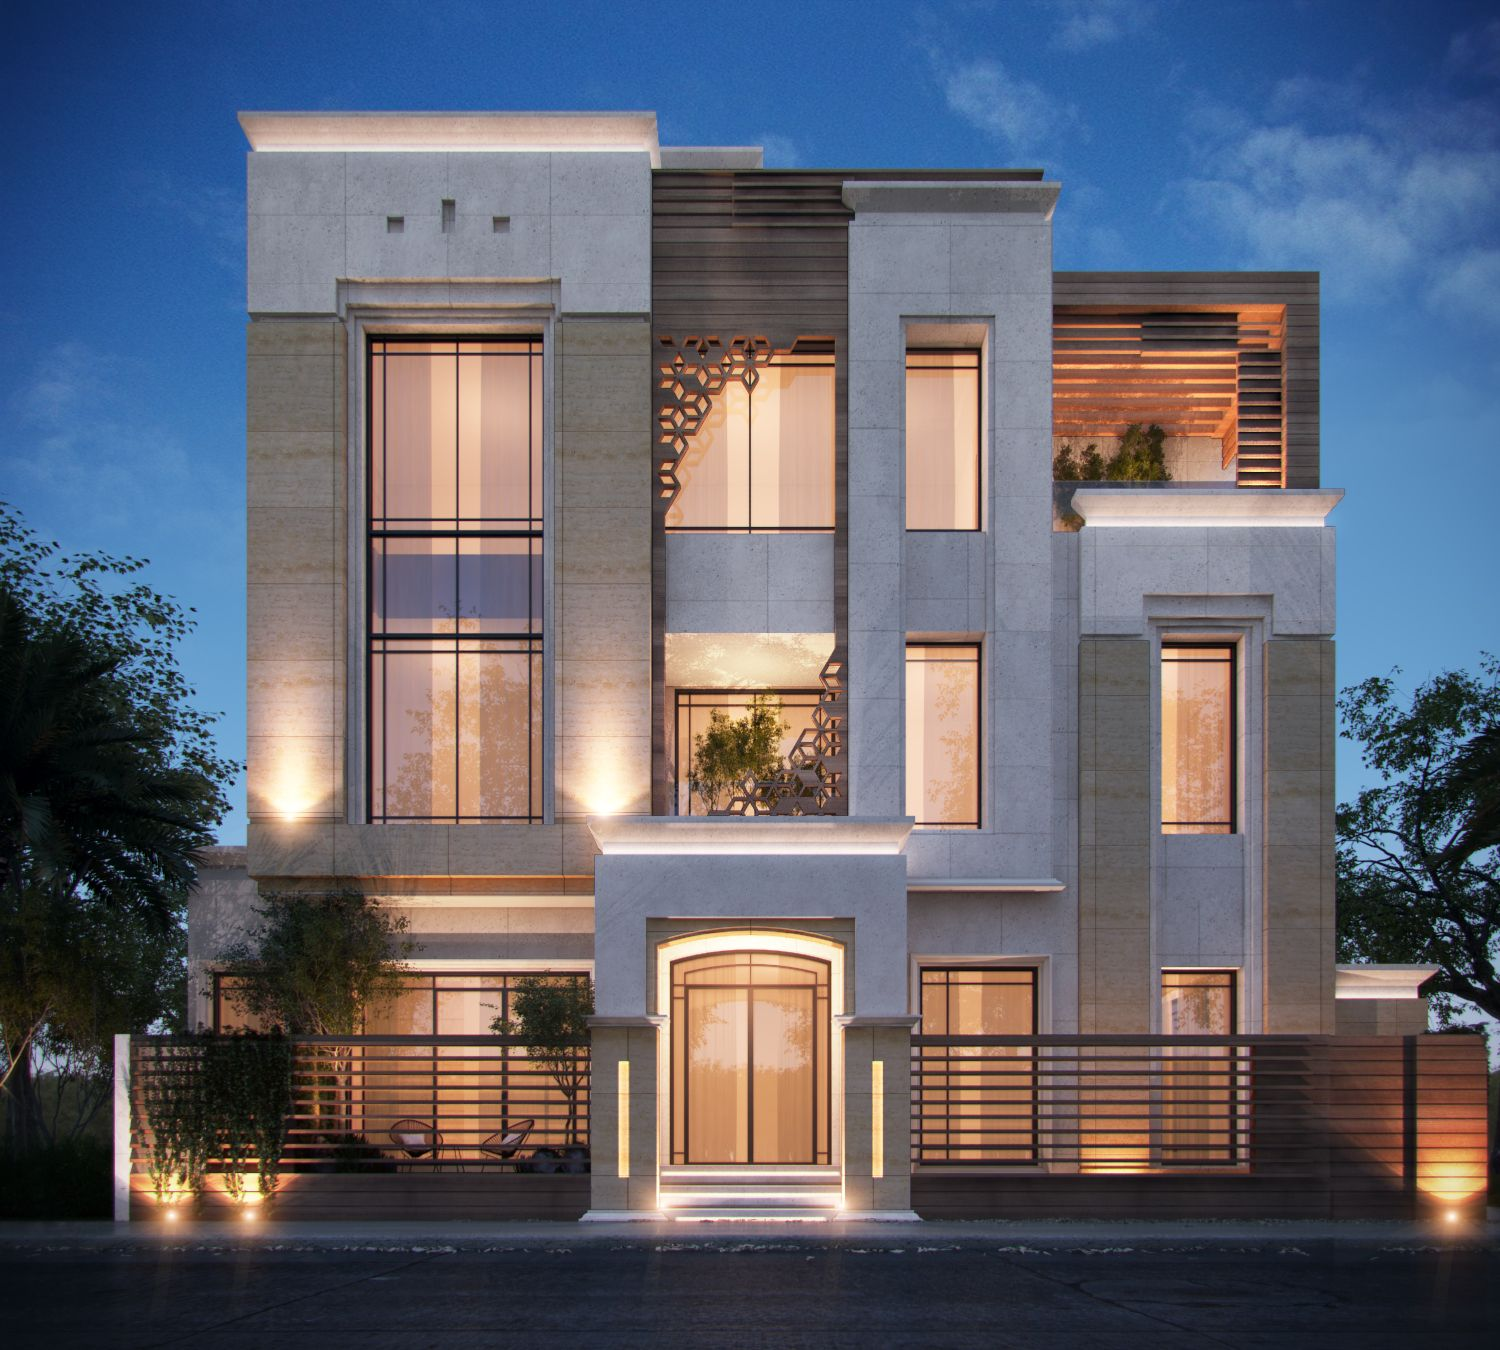 375 m private villa kuwait sarah sadeq architects sarah for In home design consultant